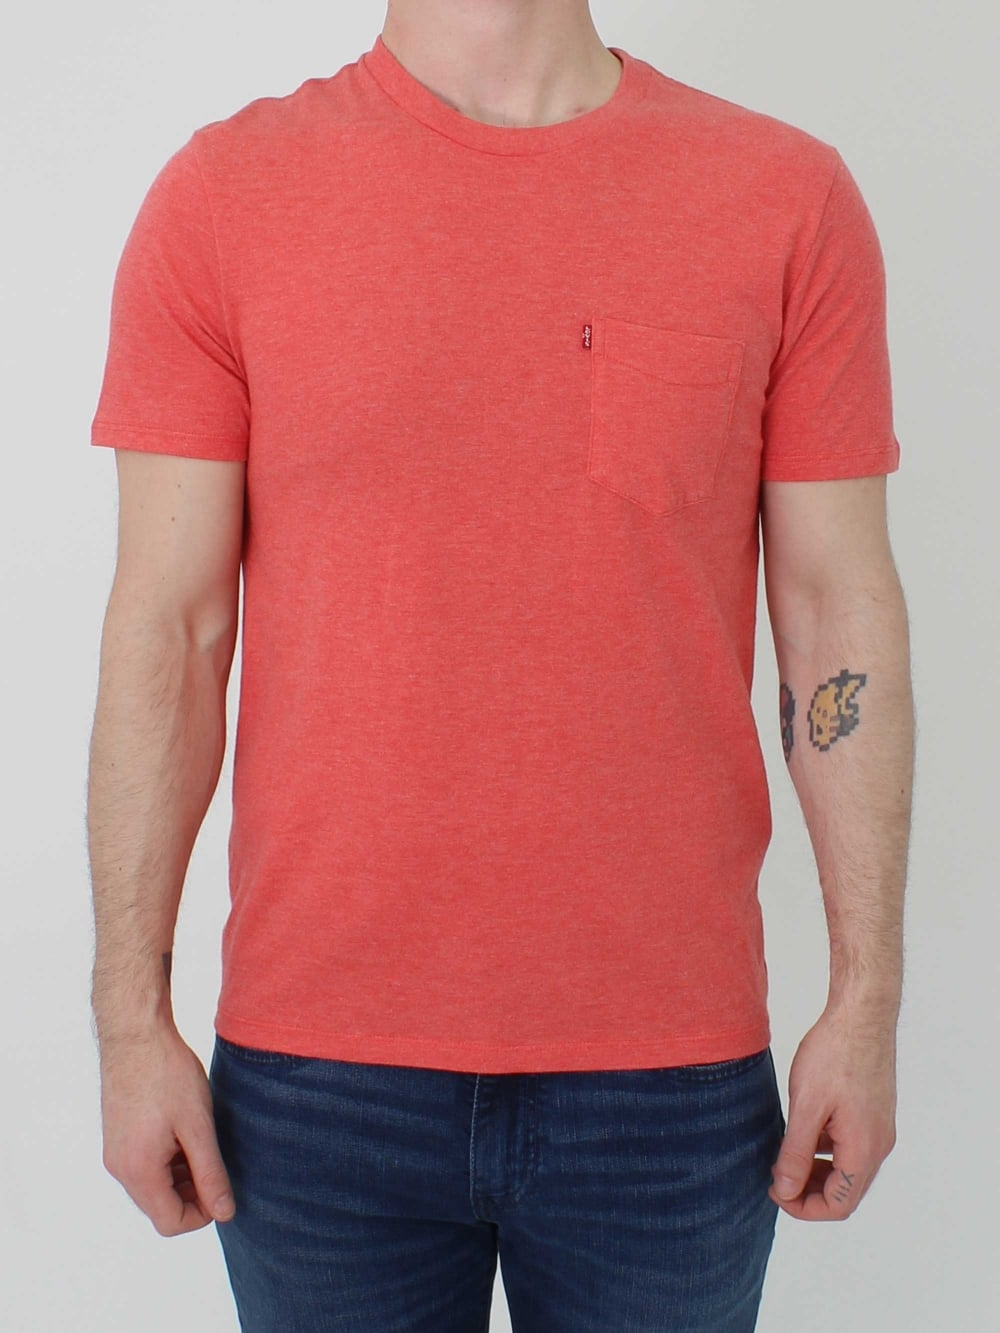 c7627d54 Levis Sunset Pocket T.Shirt in Sunset | Northern Threads